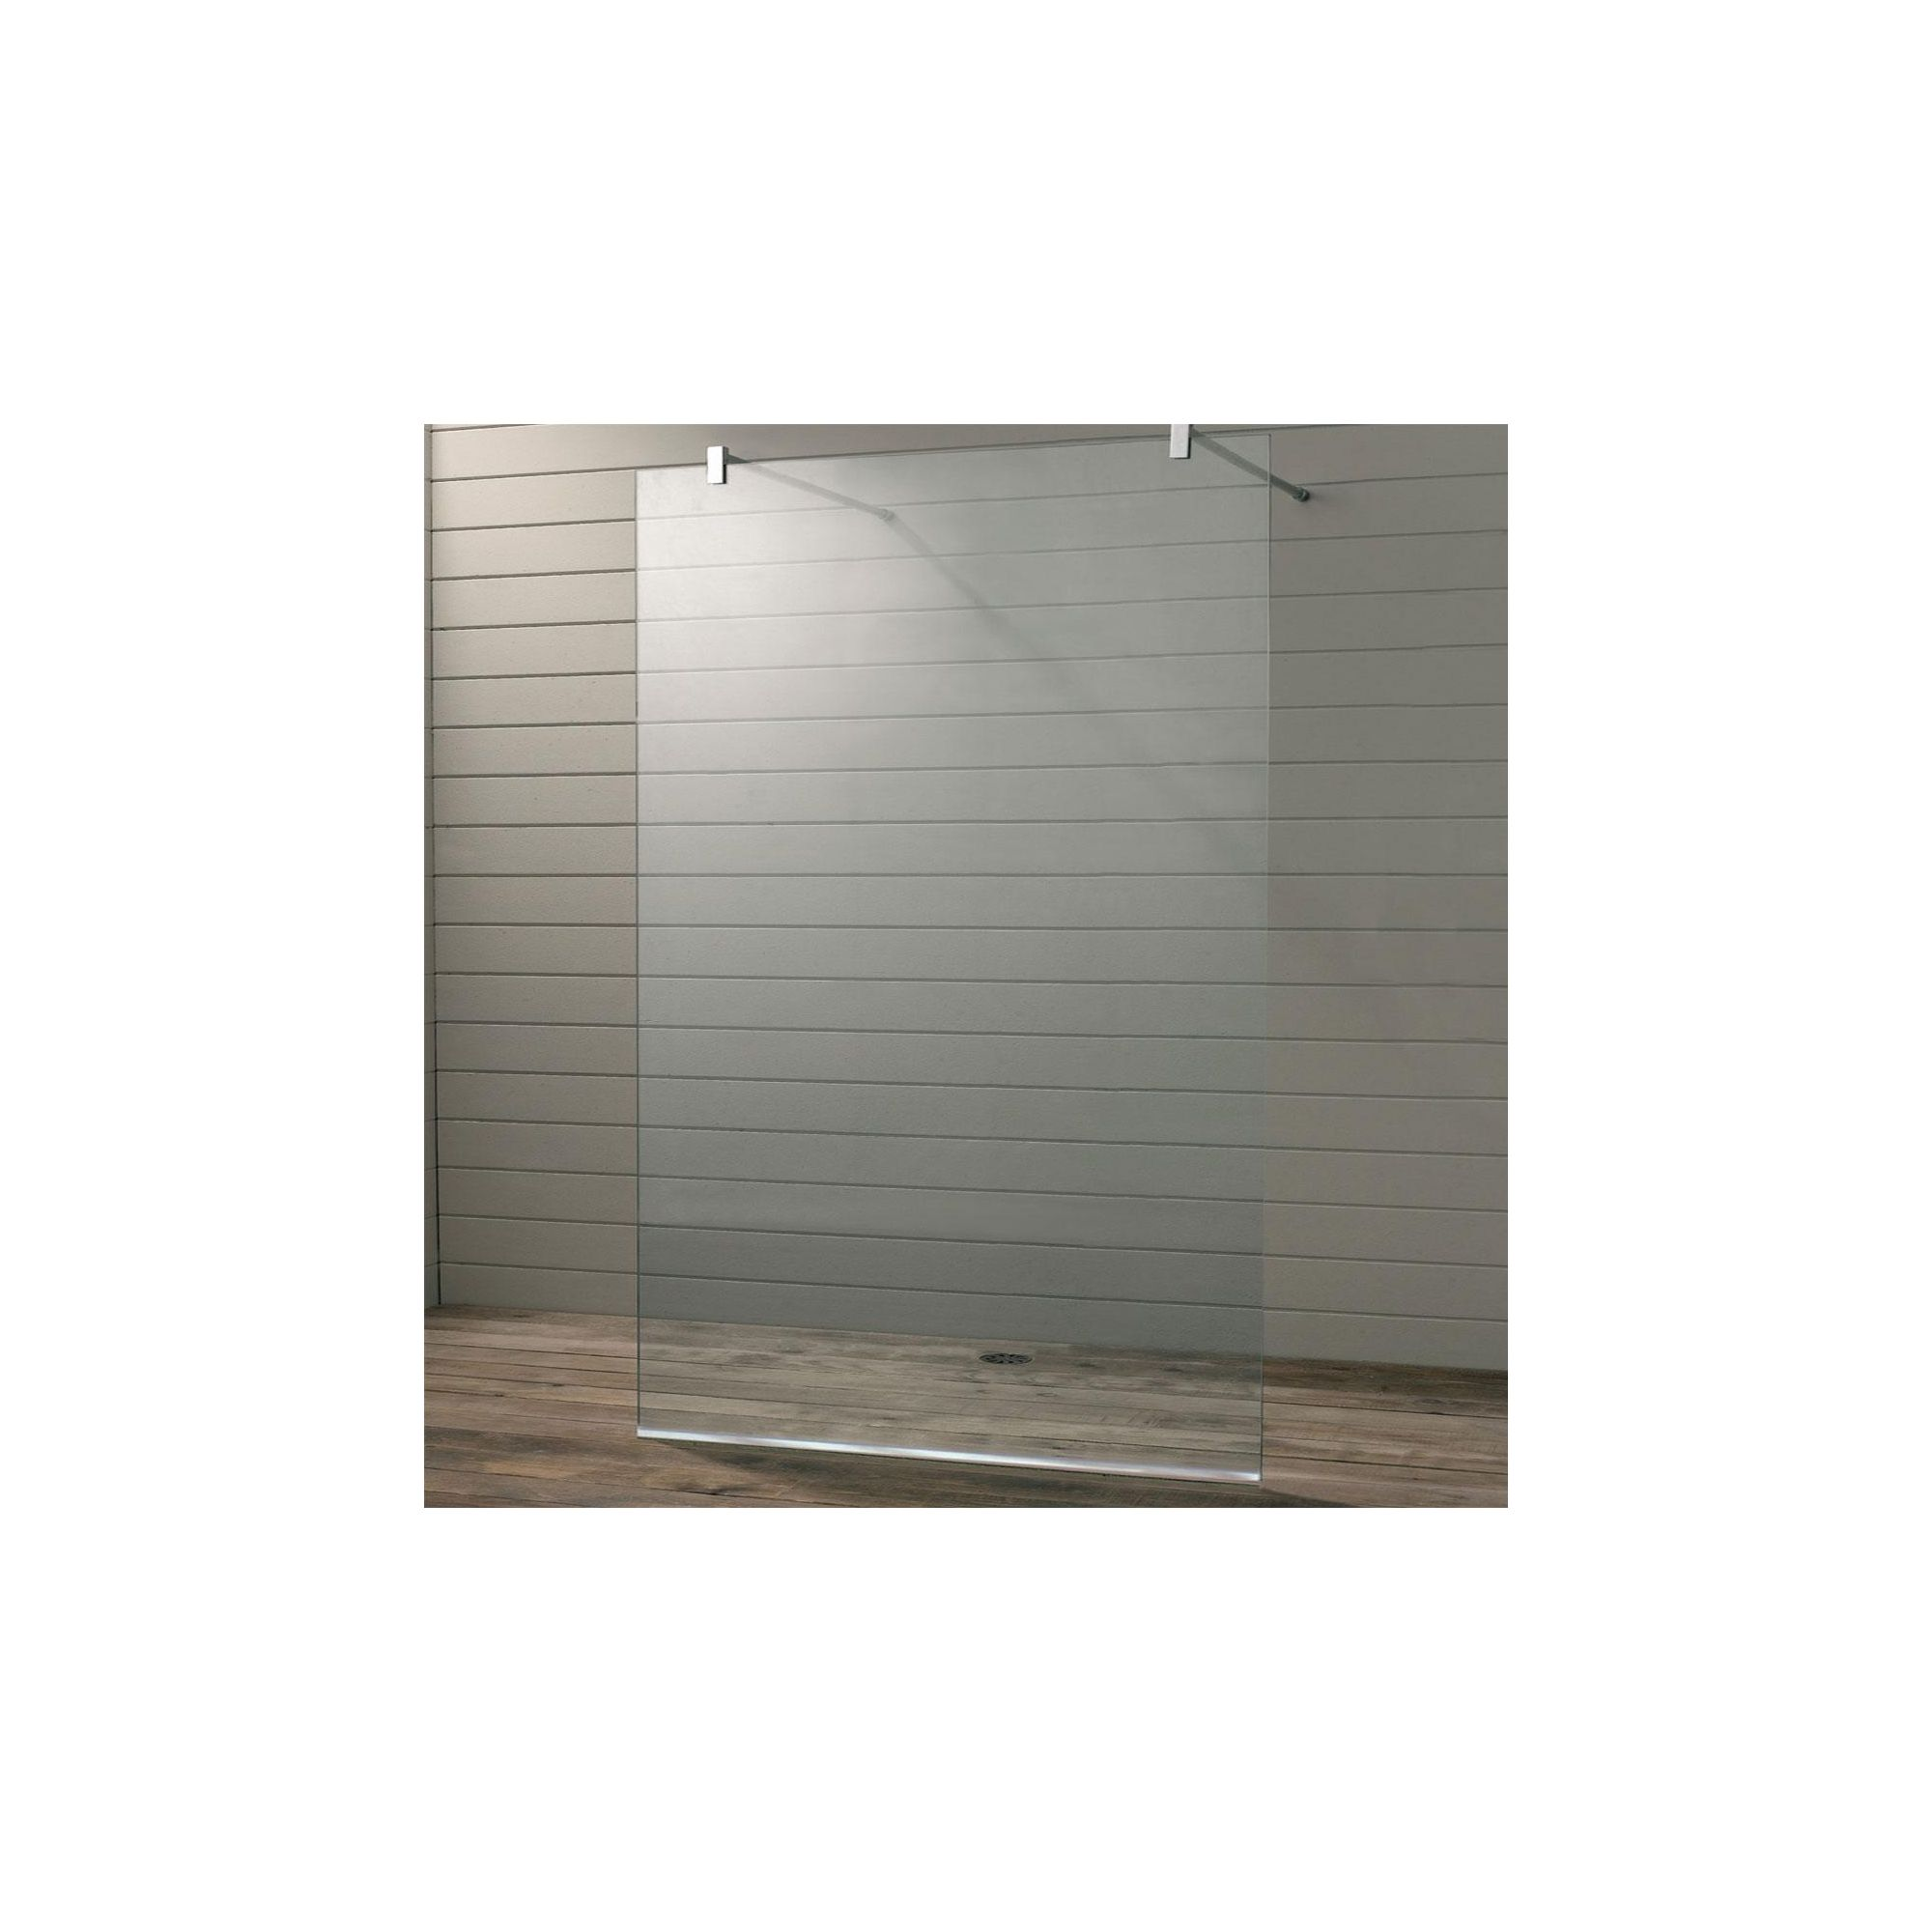 Duchy Premium Wet Room Glass Shower Panel, 1200mm x 700mm, 10mm Glass, Low Profile Tray at Tesco Direct